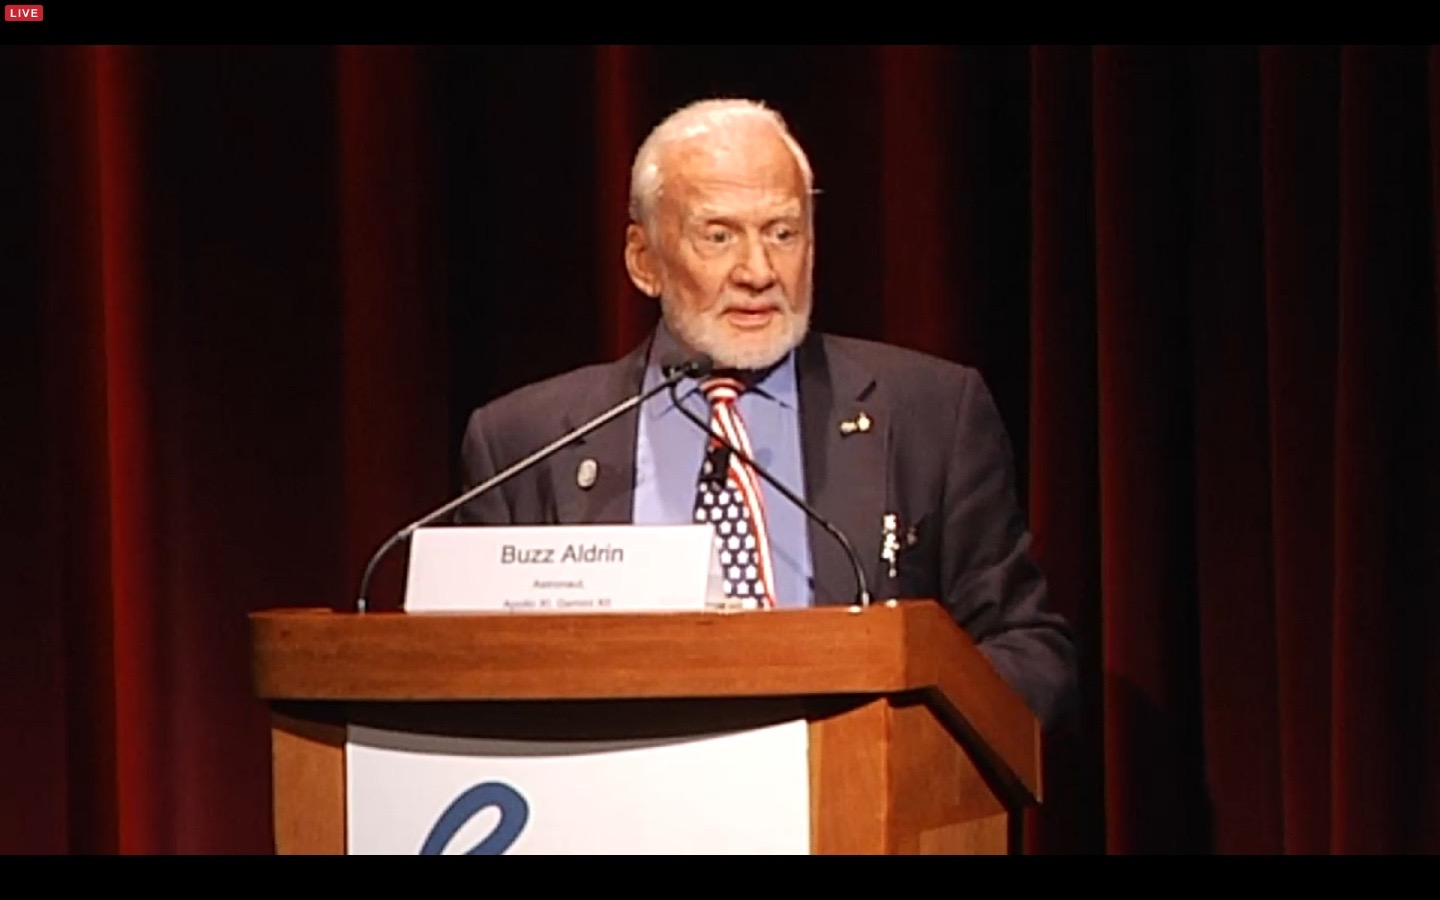 Buzz Aldrin at Humans to Mars Summit 2016